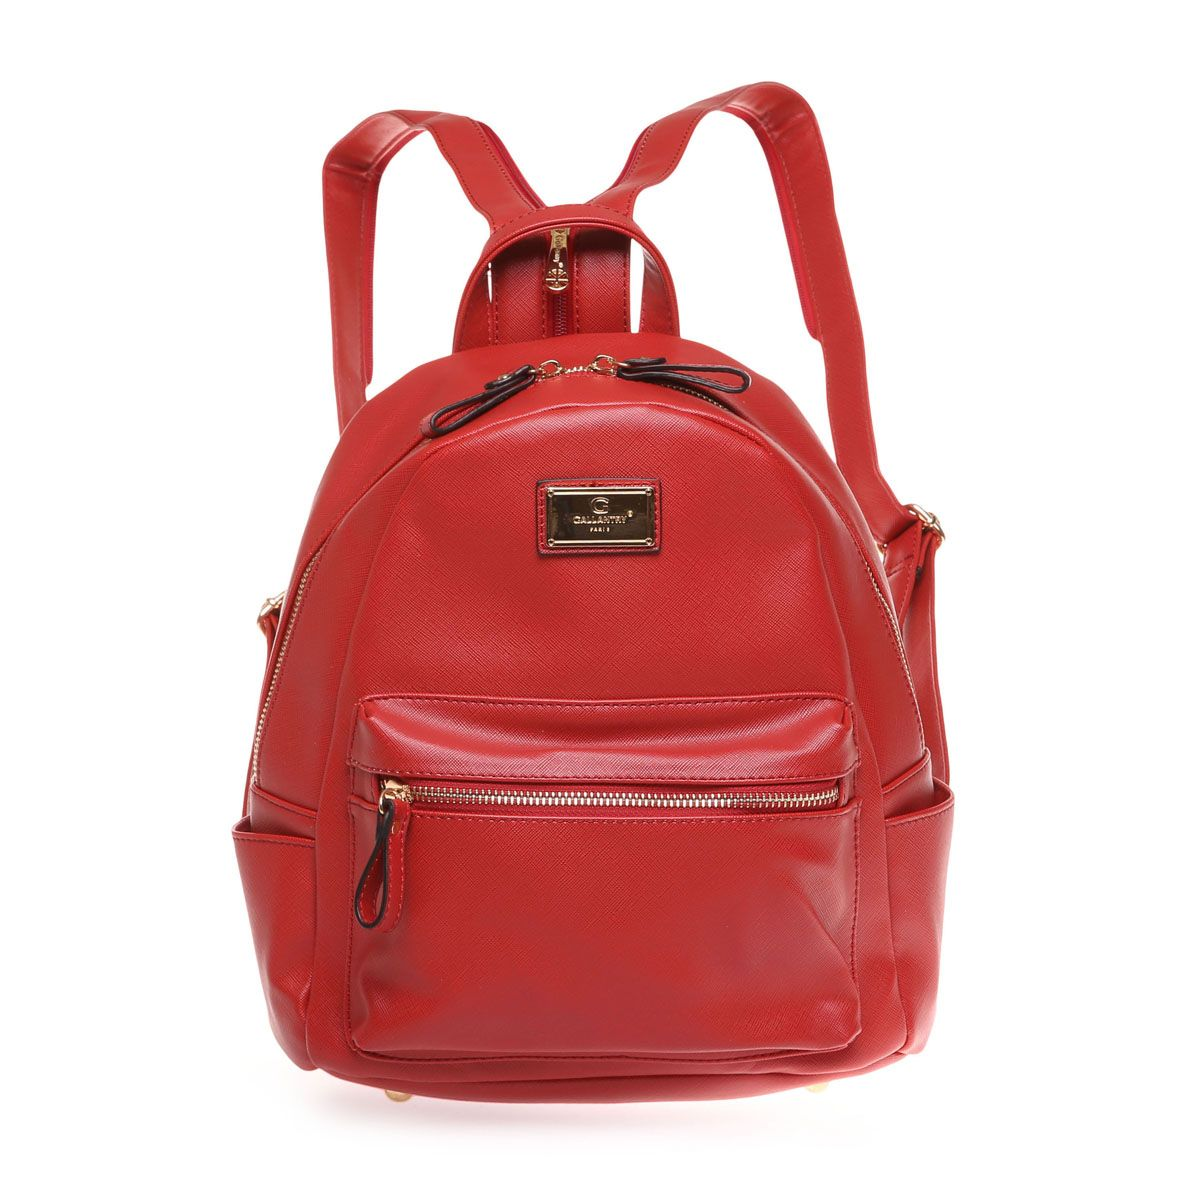 W06-802-RED